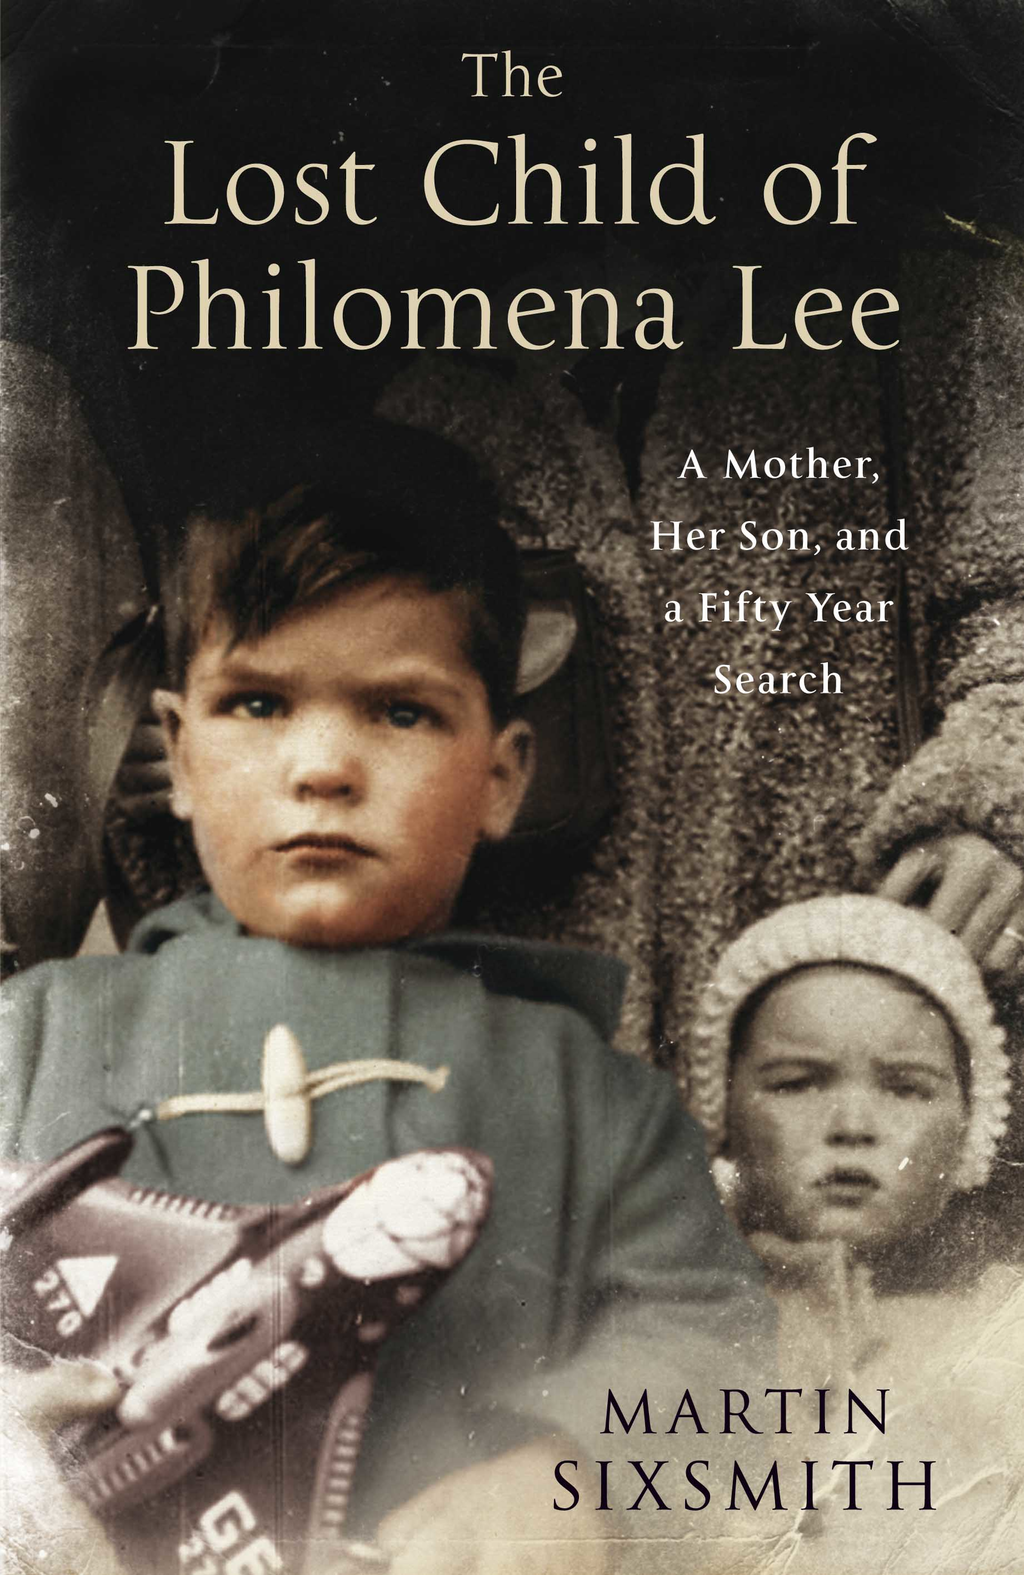 The Lost Child of Philomena Lee A Mother, Her Son and a Fifty Year Search